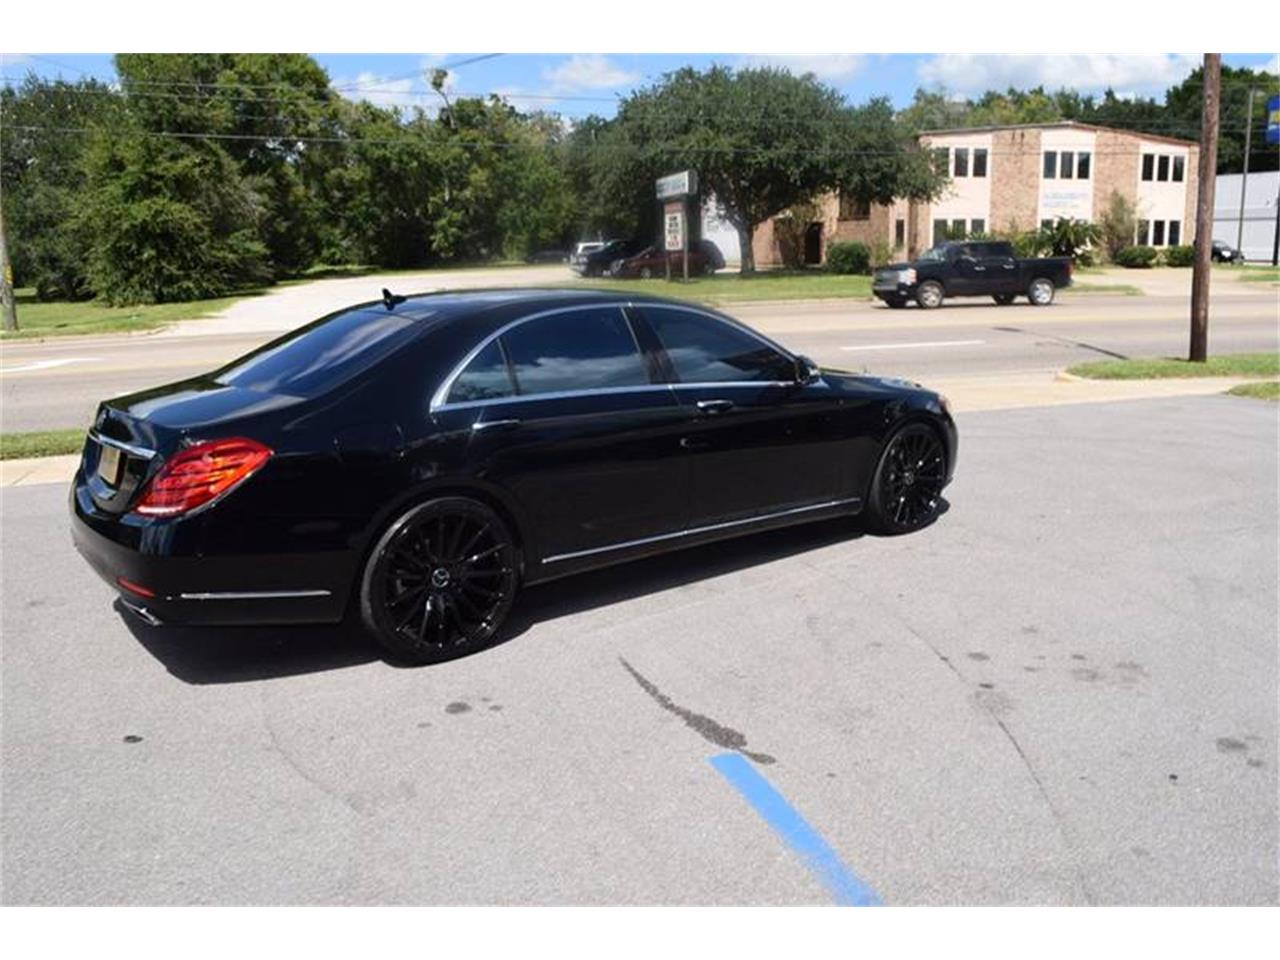 2017 Mercedes-Benz S-Class (CC-1143836) for sale in Biloxi, Mississippi